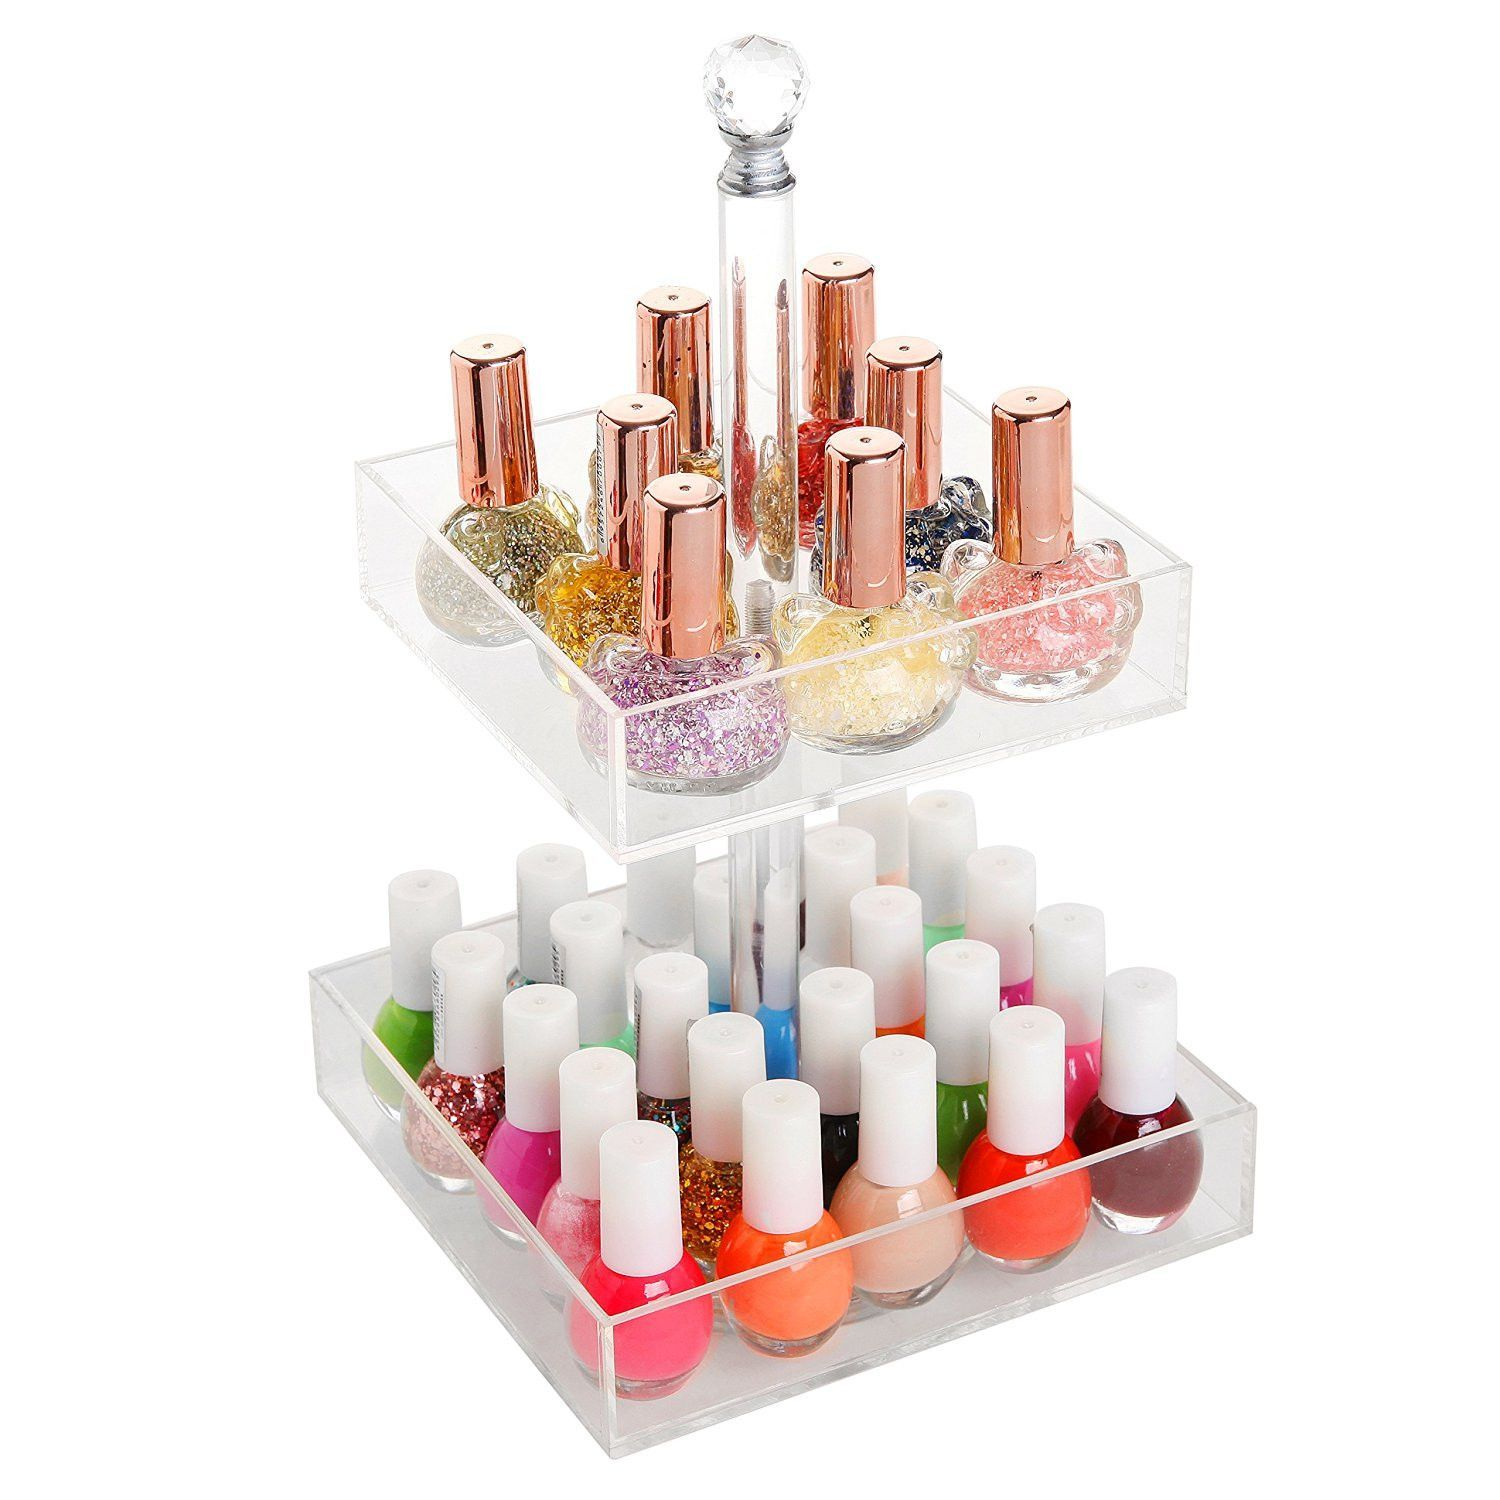 Rotating Clear Acrylic 2 Tier Nail Polish Cosmetics Organizer Display